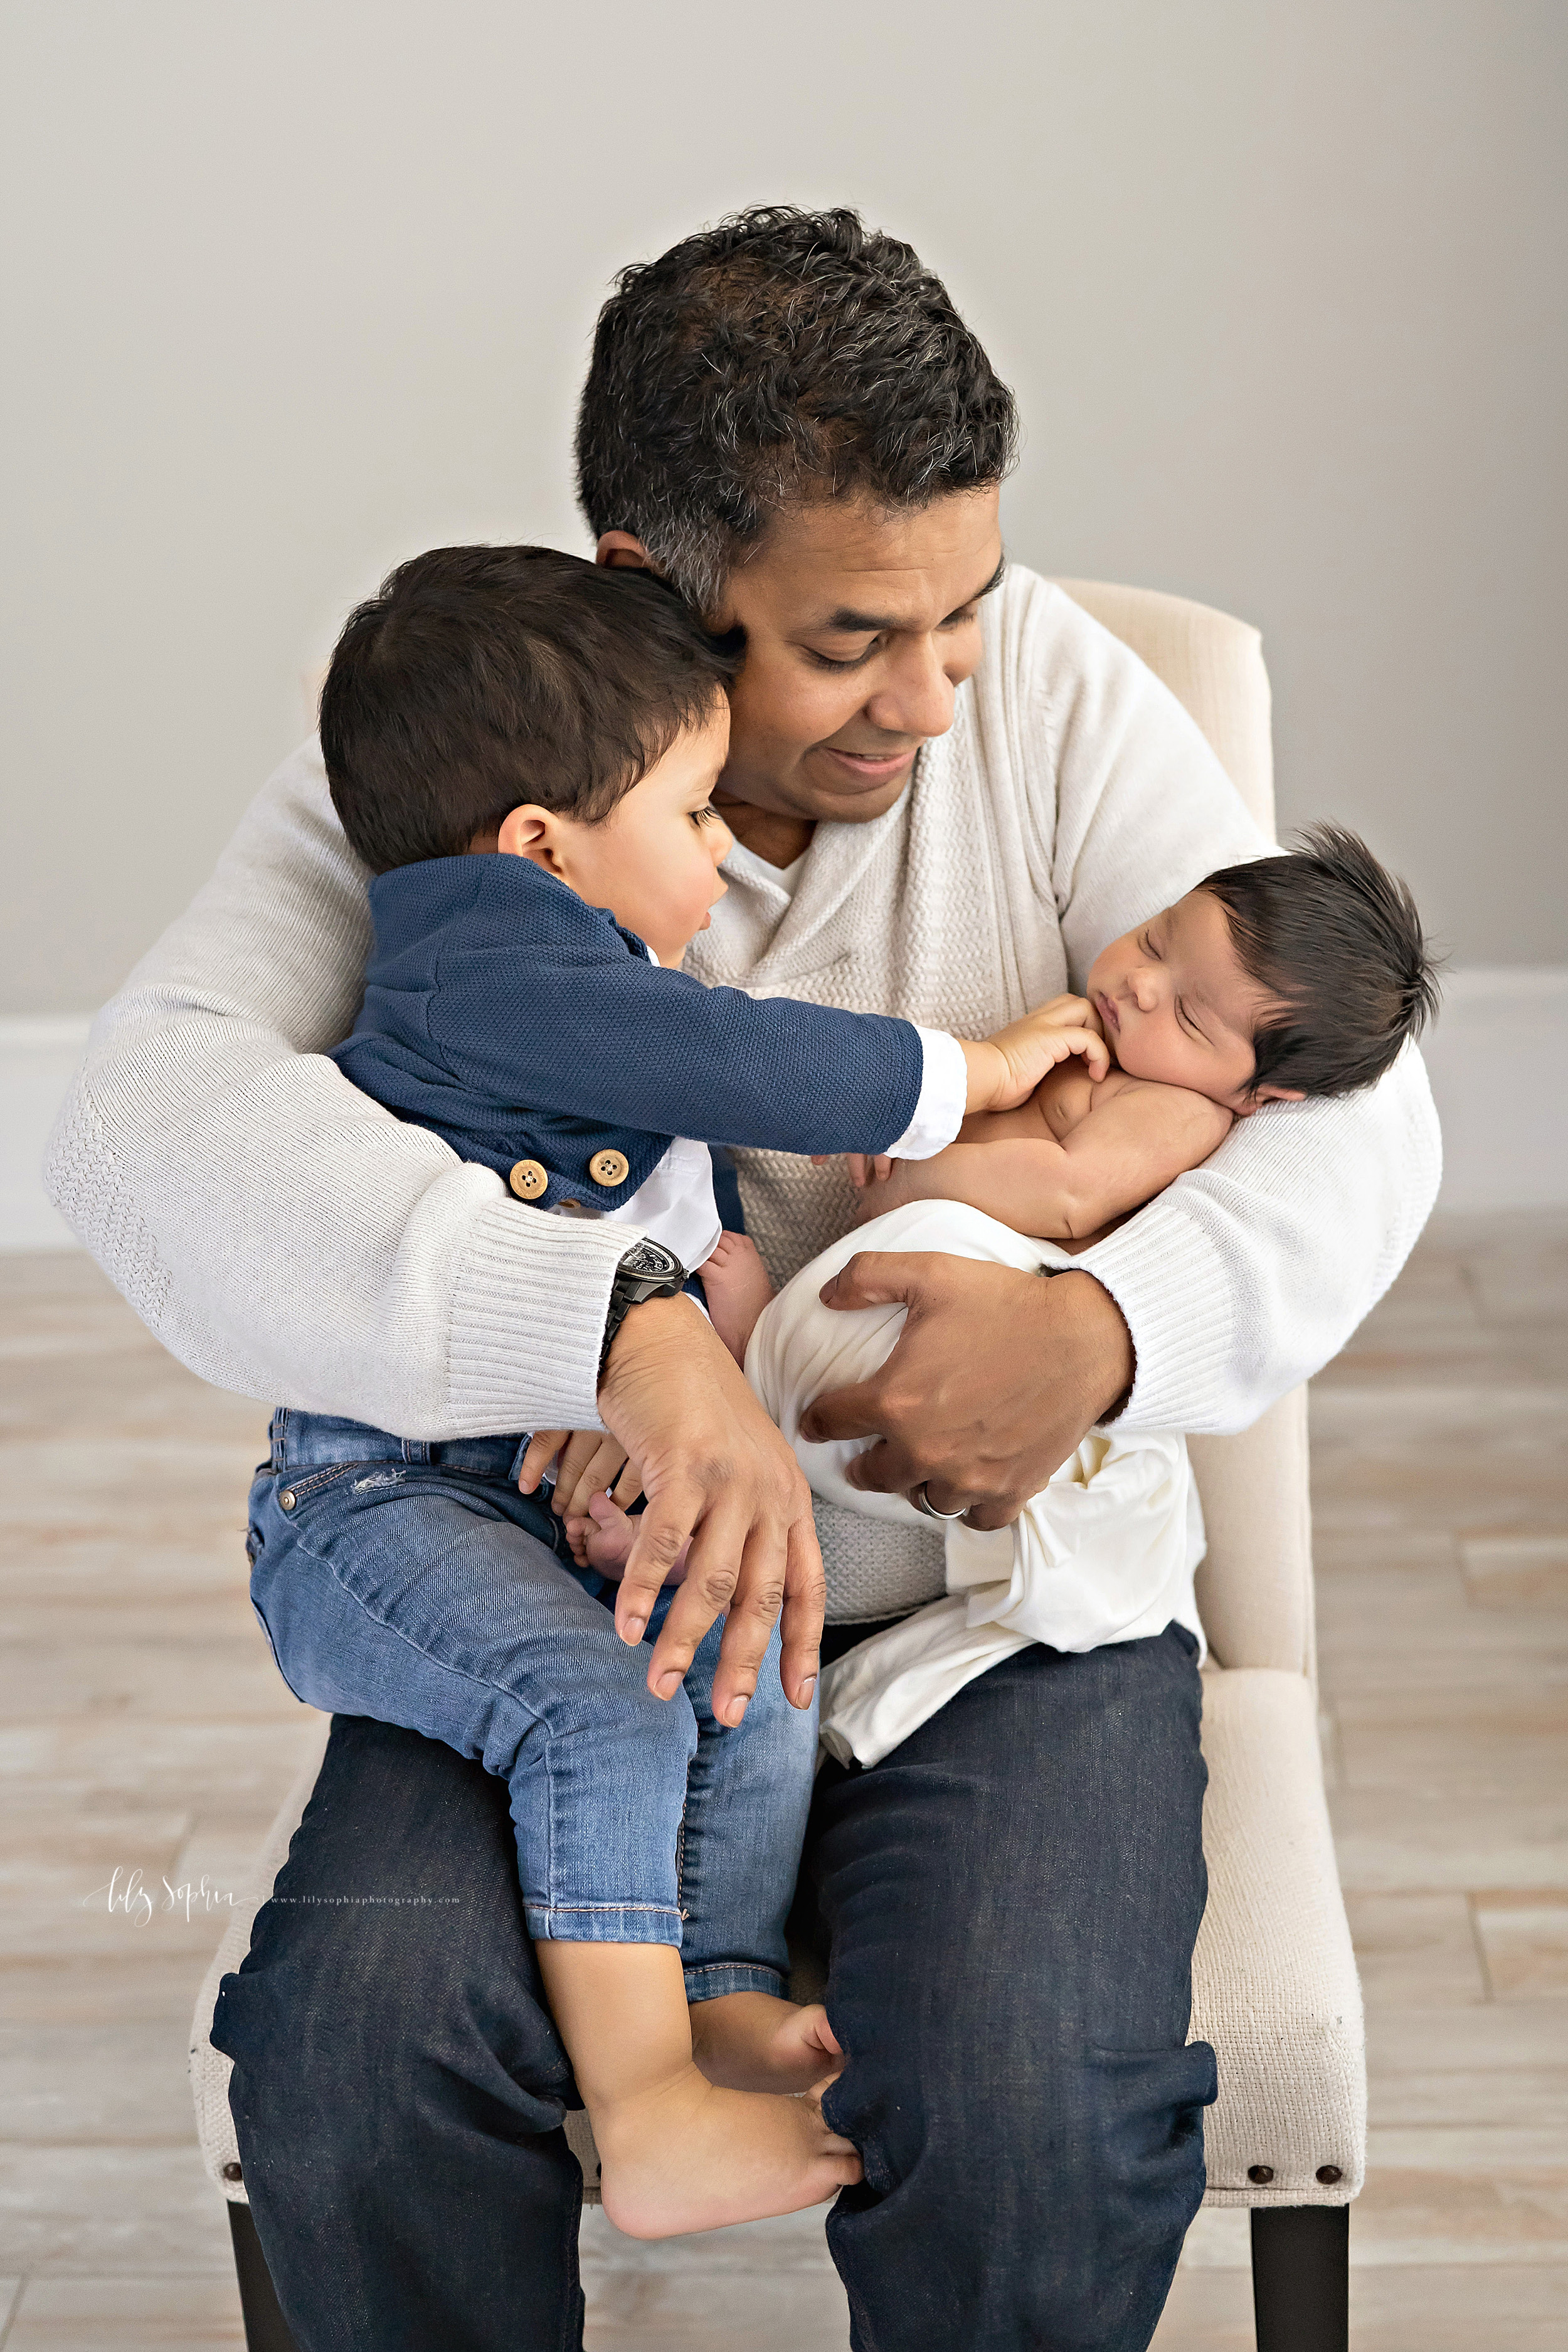 Photo of an Indian father sitting with his two young children in an Atlanta natural light studio.  The father is holding his toddler son on his right knee.  The toddler is tickling his infant sister under her chin as she sleeps in her father's left arm.